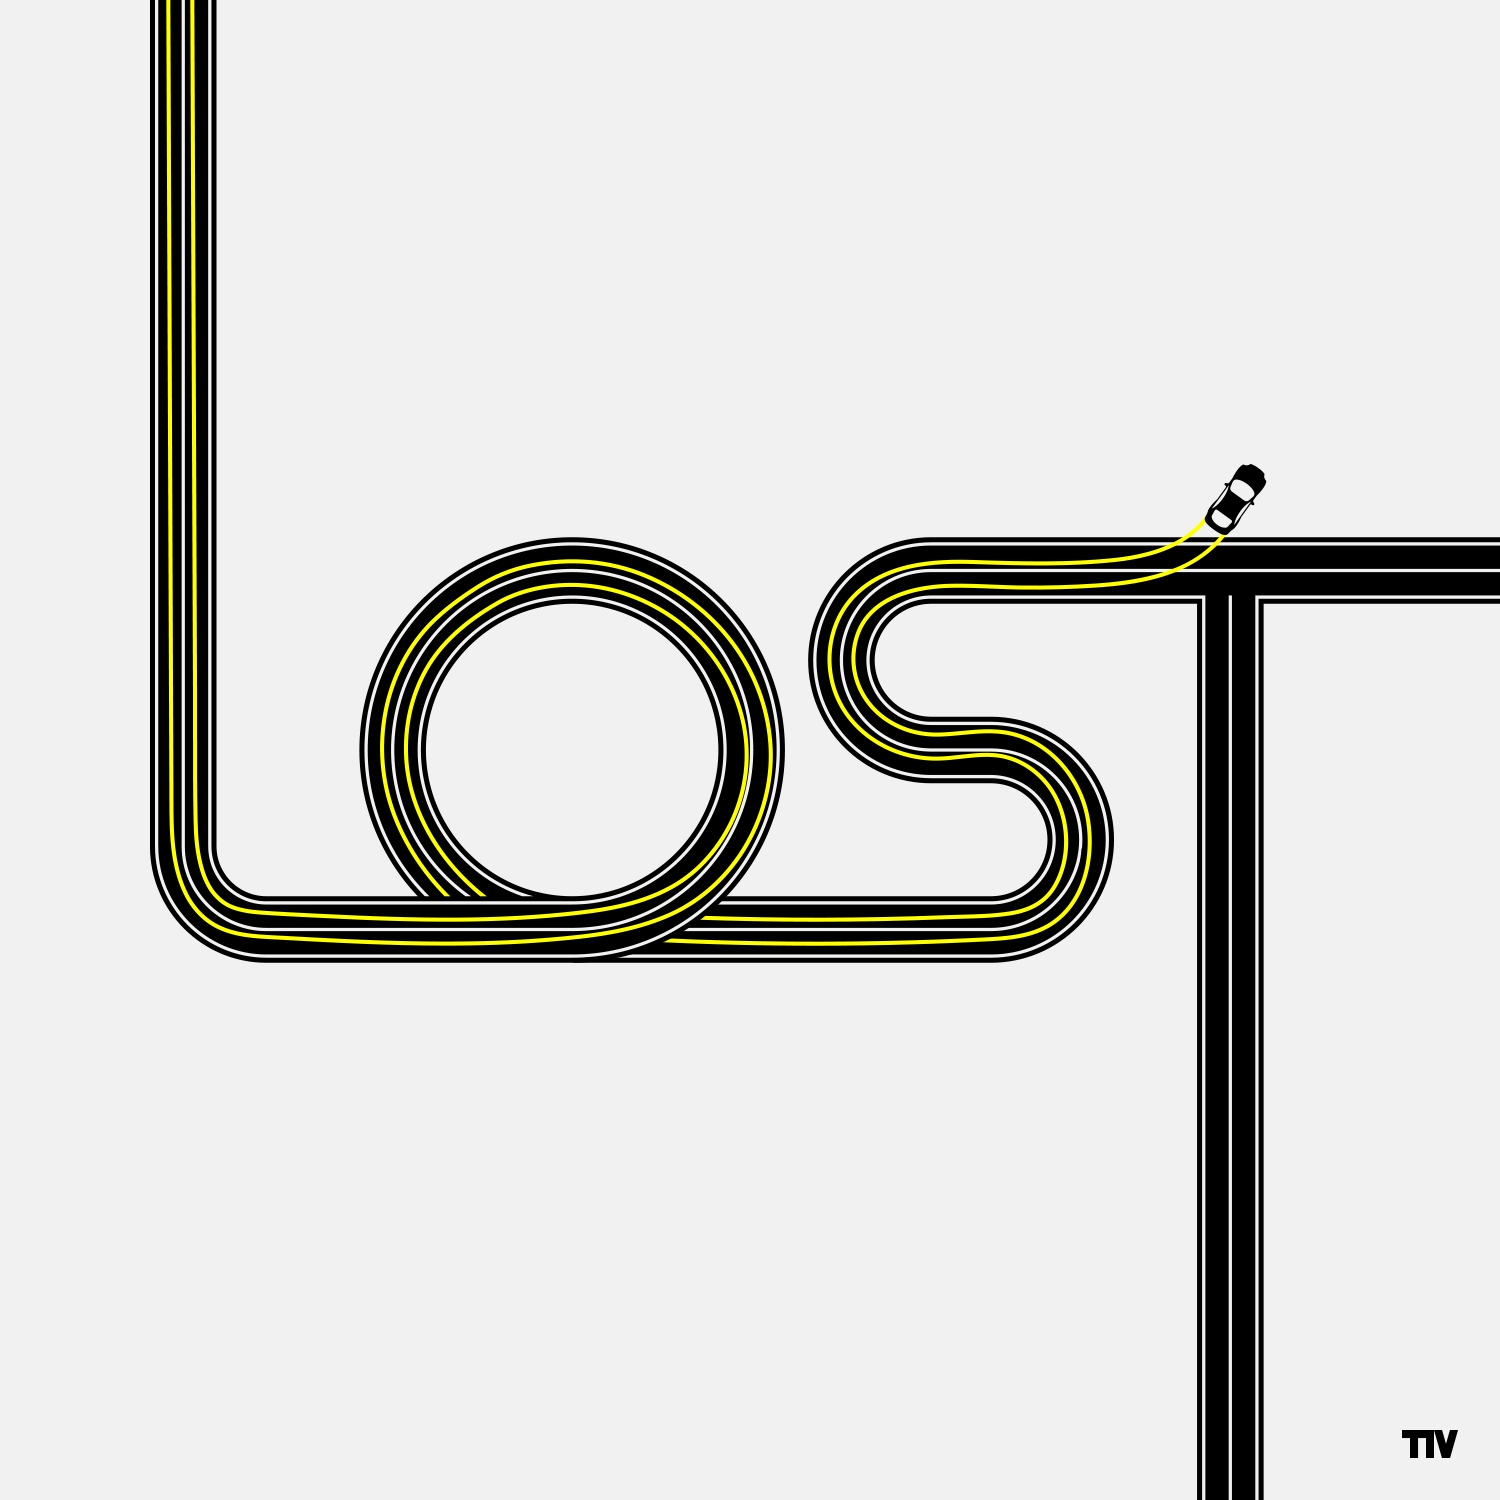 < LOST > 2017 TIVSOY Lost - tivsoy | ello